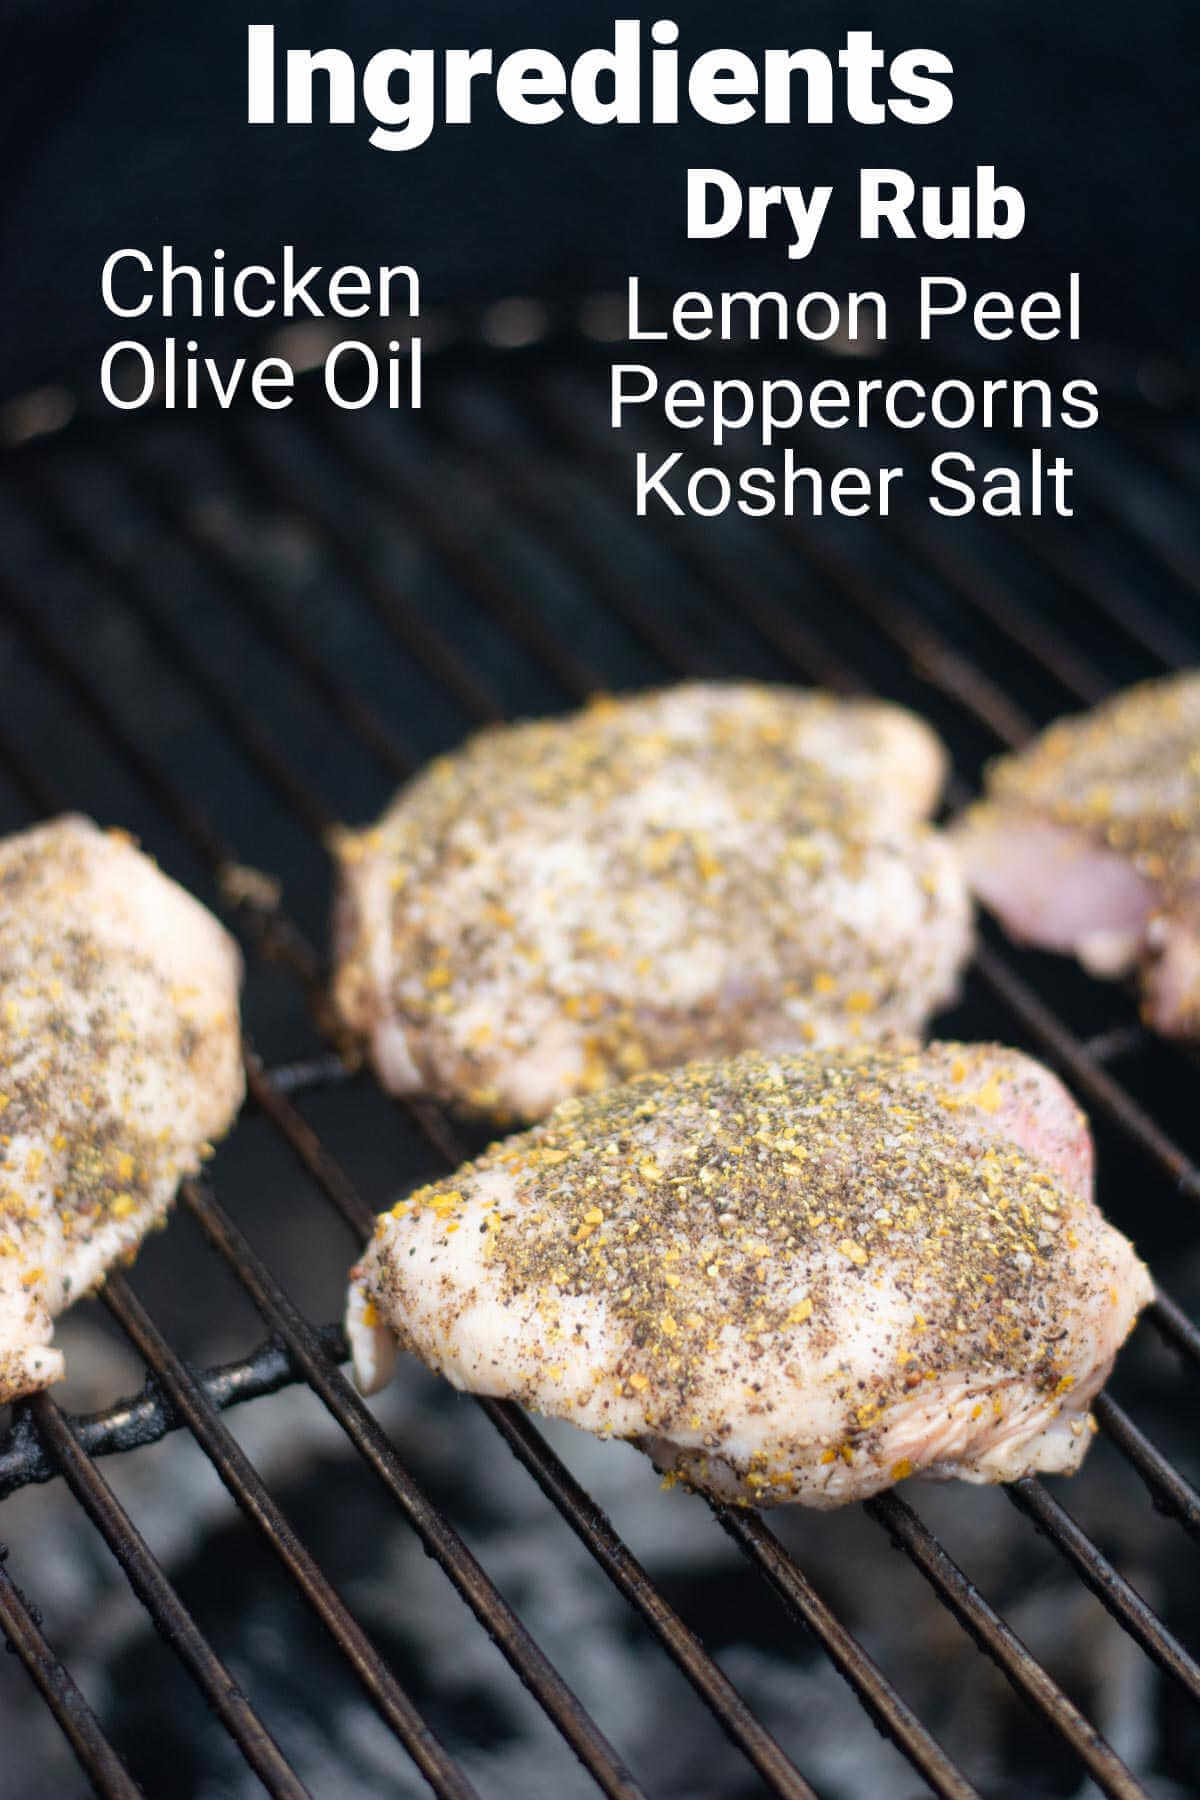 ingredient photo showing the chicken covered in the seasoning on the grill with labels.